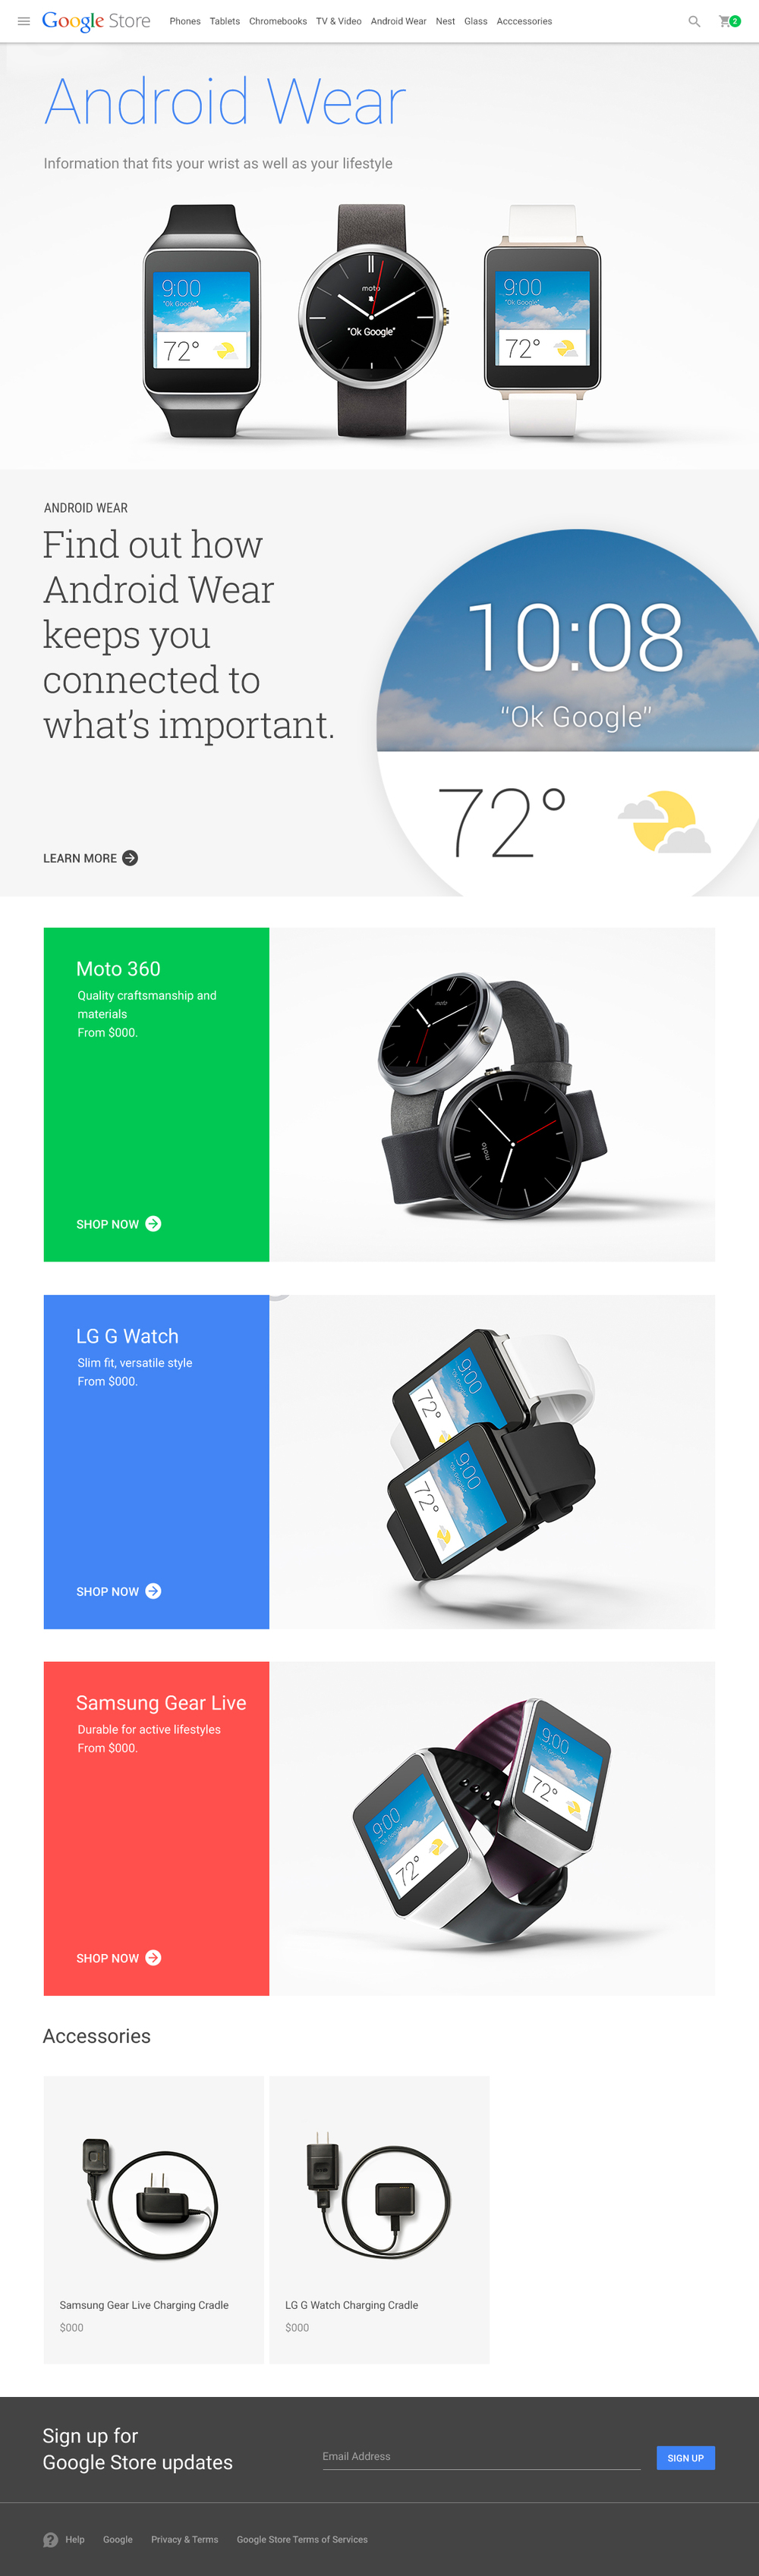 Android Wear Category Page